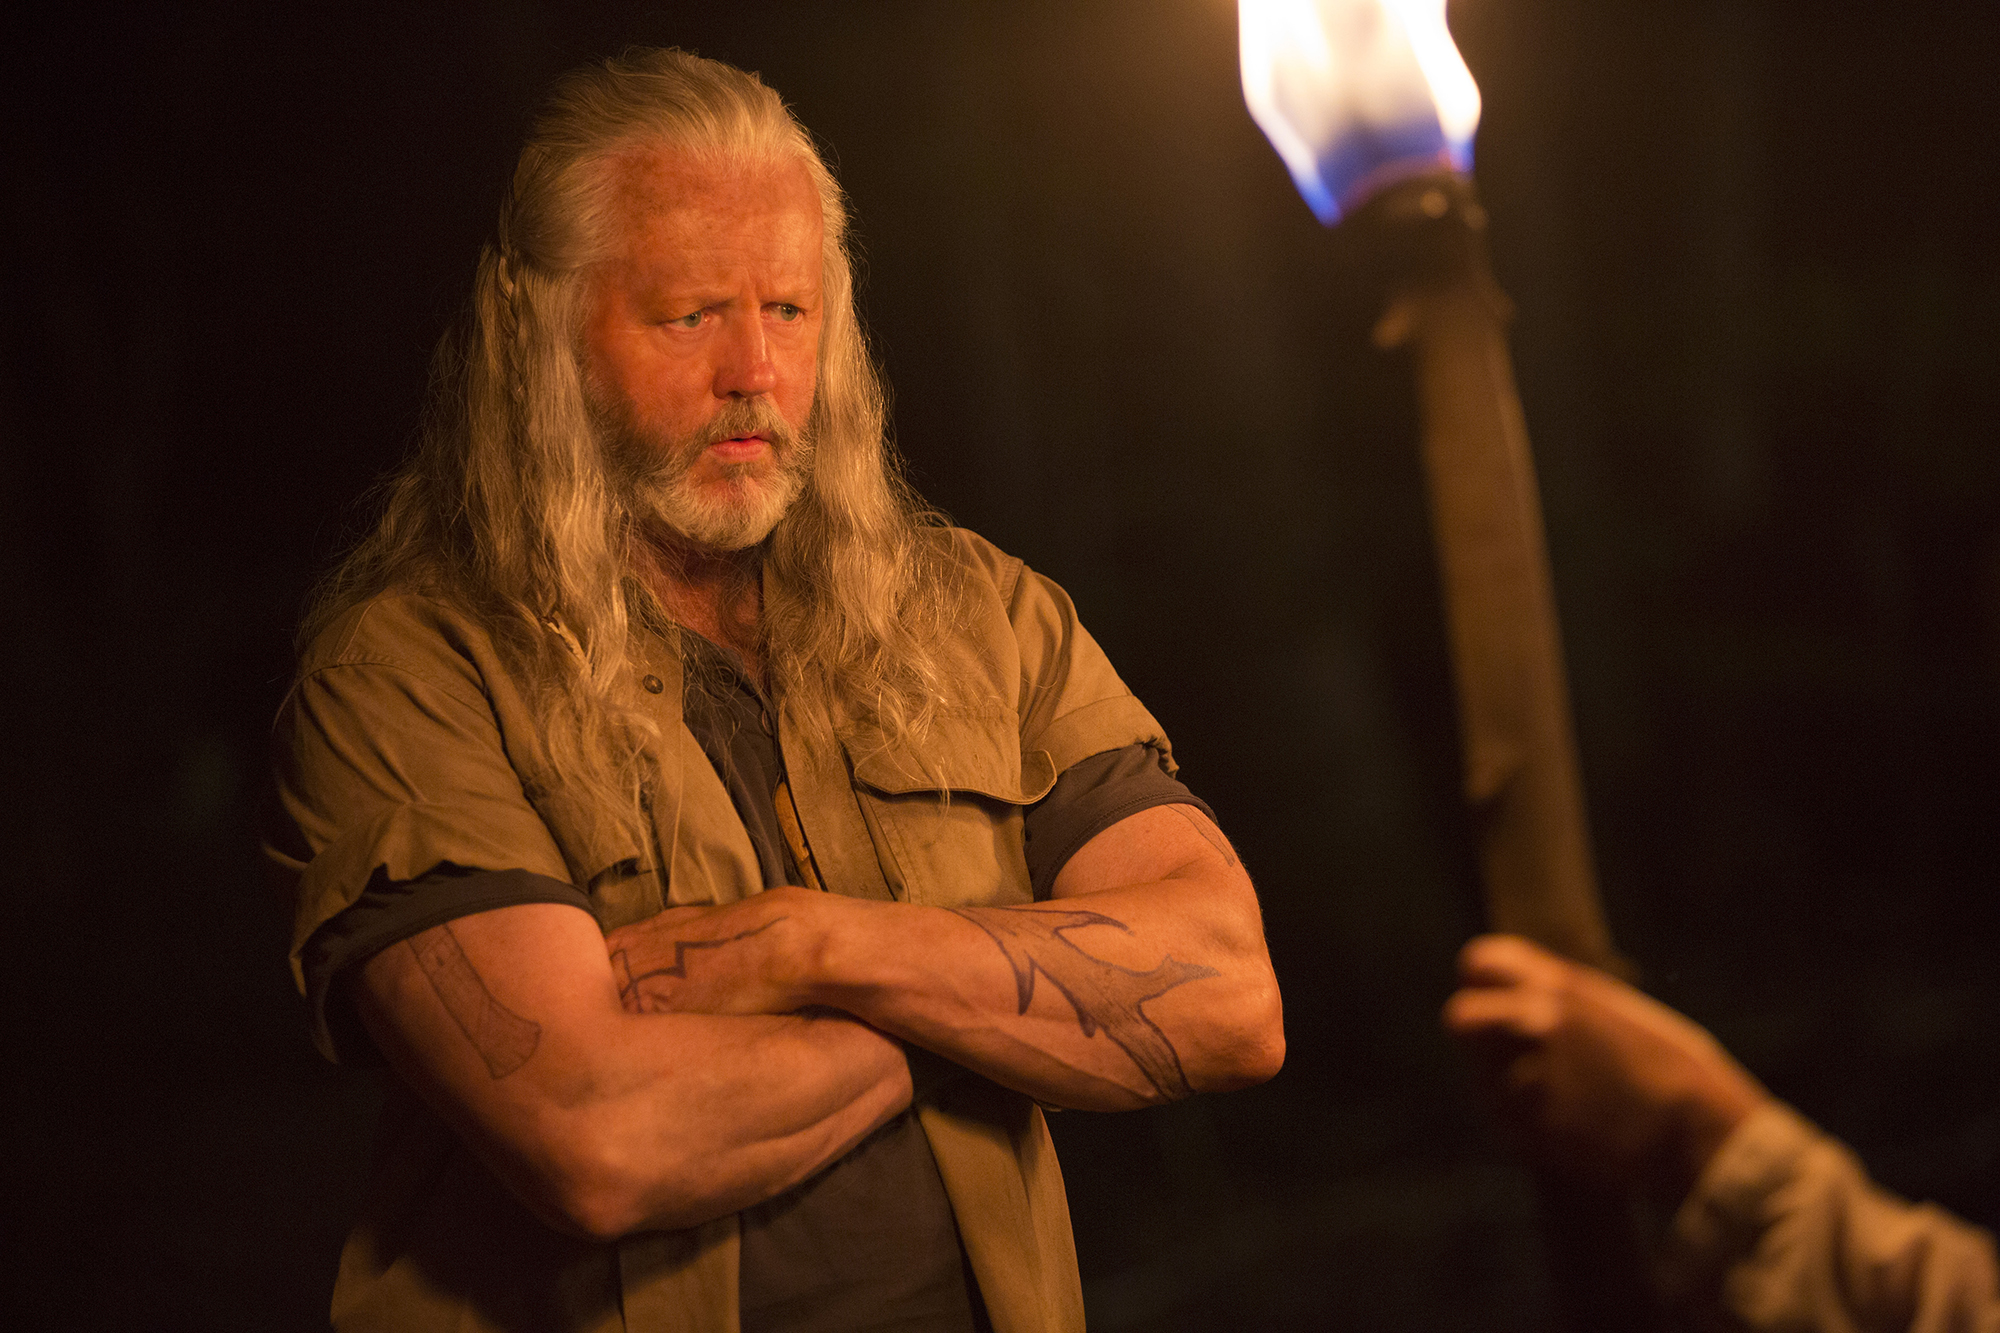 david-morse-as-big-foster-in-WGN-Americas-new-series-Outsiders-premiering-Tuesday-January-26-at-9pm-ETPT